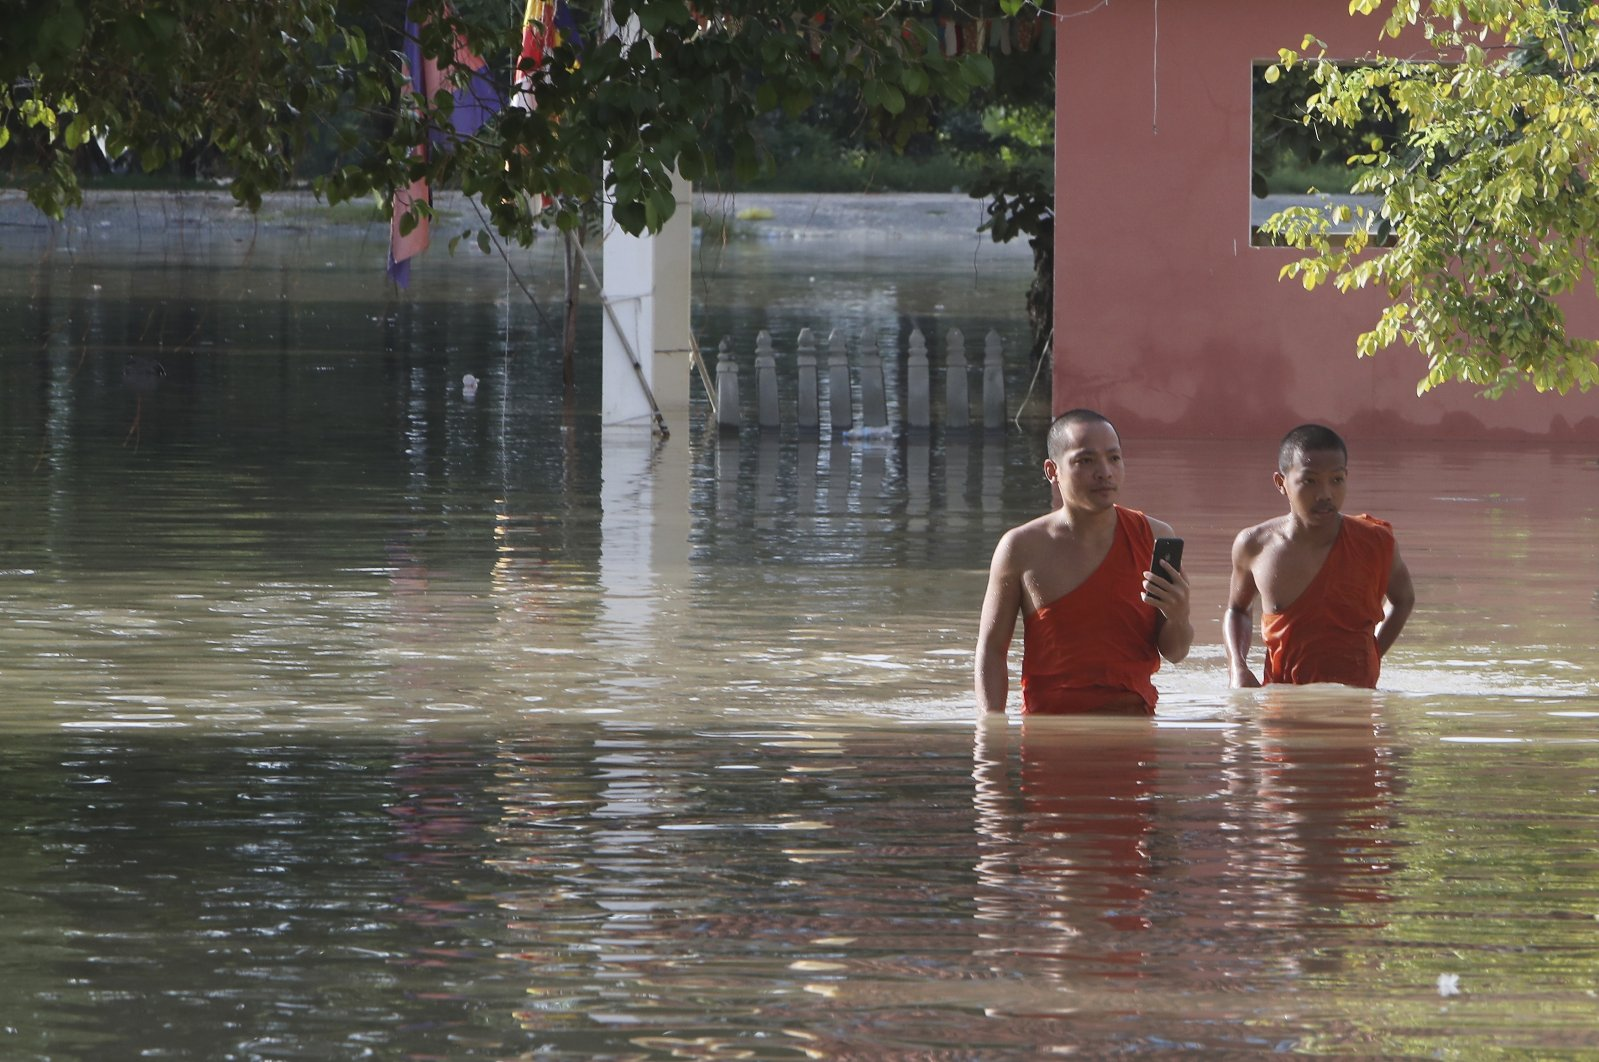 Buddhist monks walk through a flooded pagoda following recent rains on the outskirts of Phnom Penh, Cambodia, Oct. 14, 2020. (AP Photo)